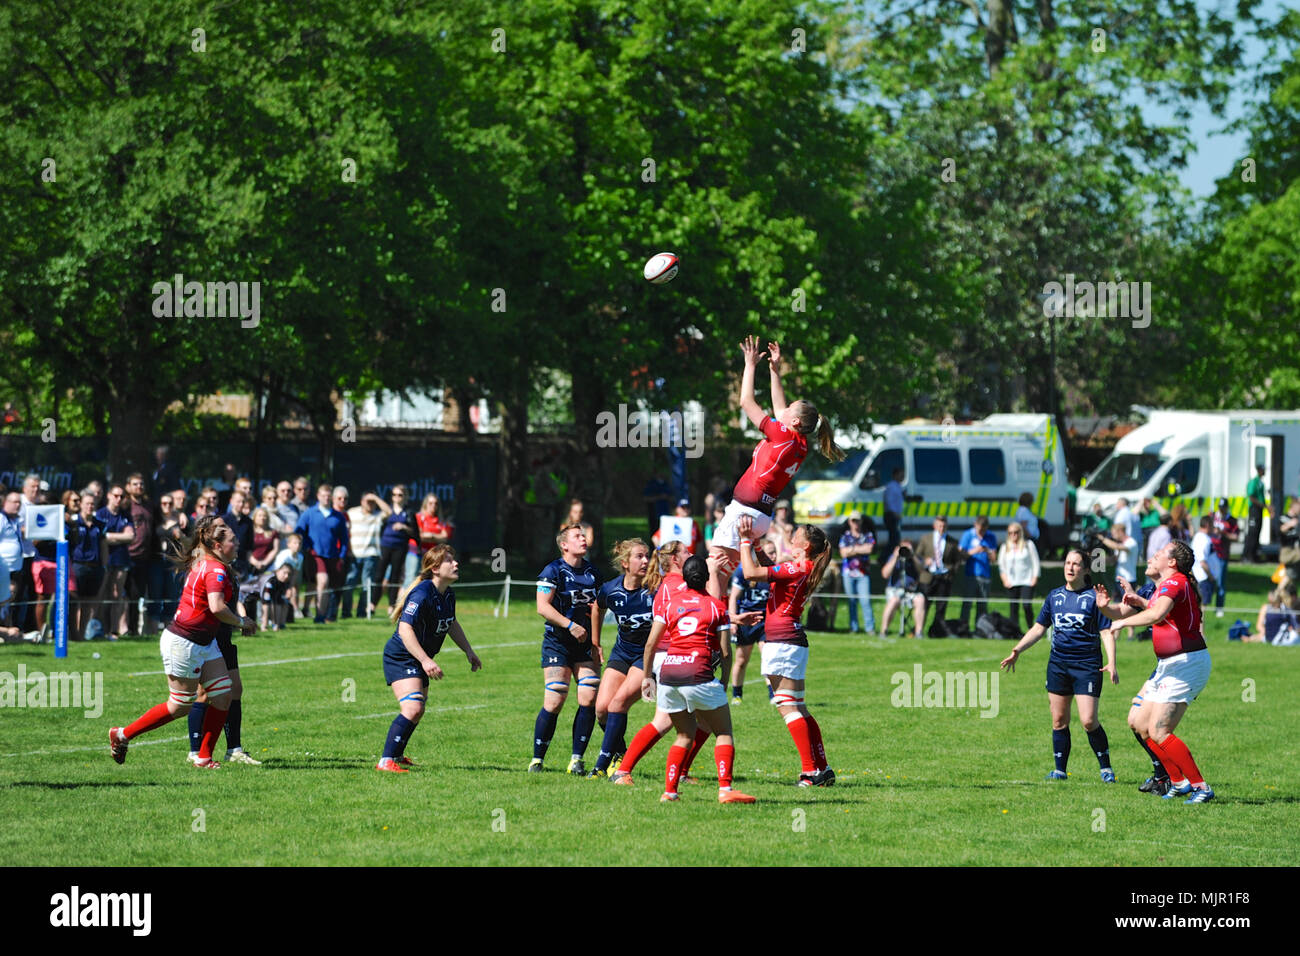 London, UK, 5 May 2018. Ellie Gattlin (LCpl, British Army, Vice-Captain) being lifted up to catch the ball after a thrown in during the annual women's annual inter-service competition match at Kneller Hall, London, UK.  The match was won by the British Army, 72-3.    In 2003 a Women's Inter-Service Competition was introduced to run alongside the men's competition. The inaugural competition was w Credit: Michael Preston/Alamy Live News - Stock Image